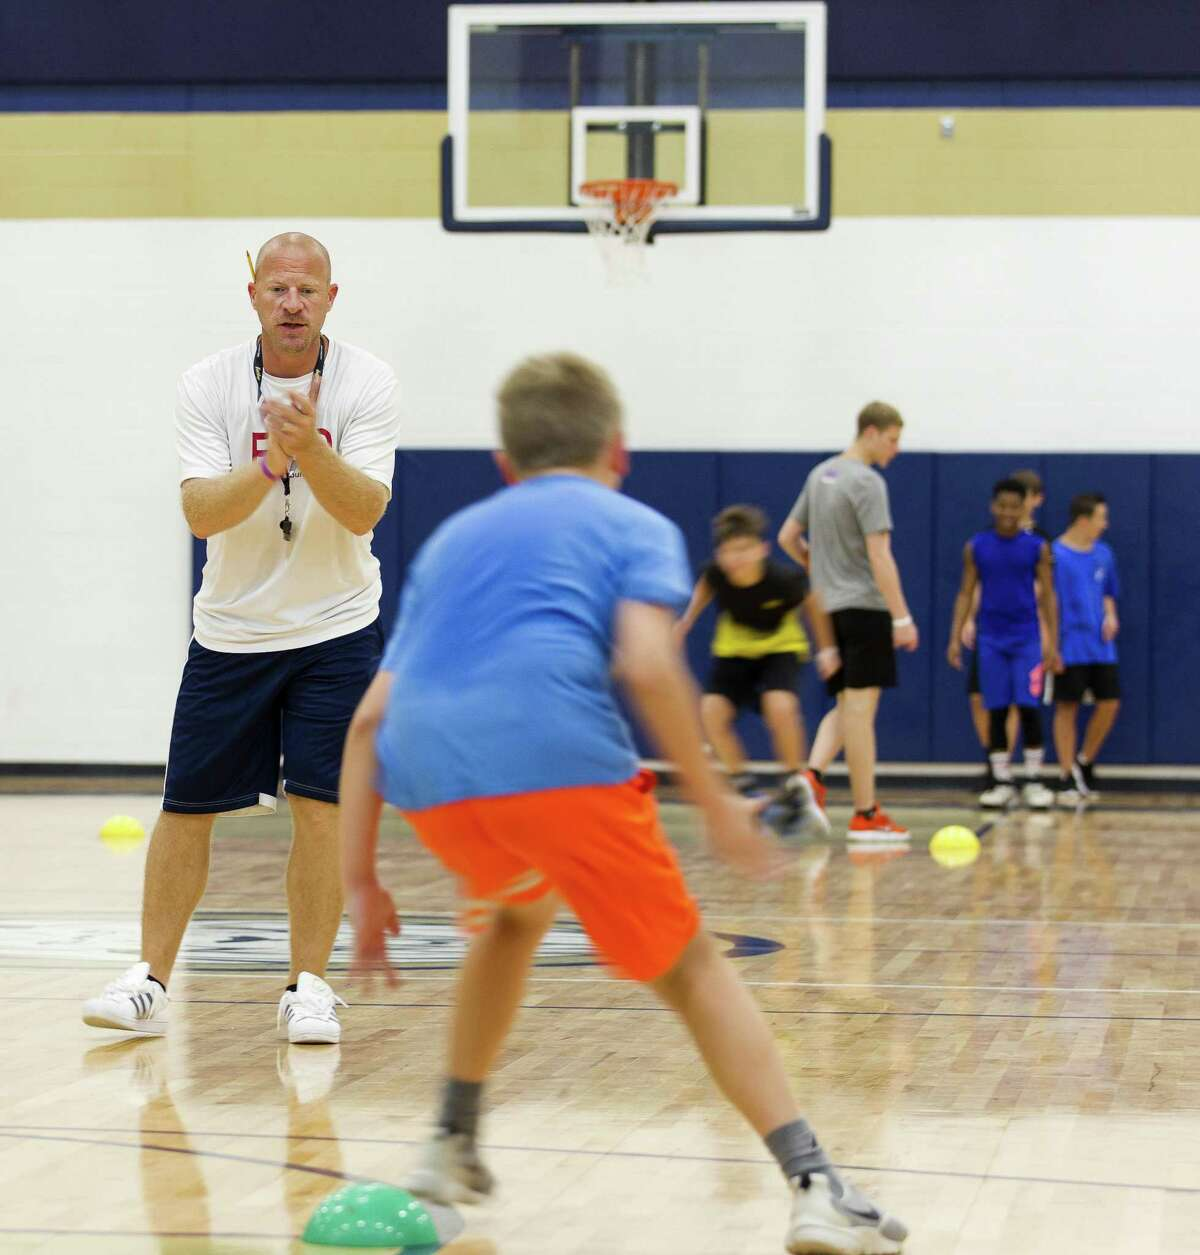 Lake Creek head coach Shannon Spencer encourages campers during a basketball camp at Oak Hills Junior High School on Wednesday, June 13, 2018, in Montgomery.